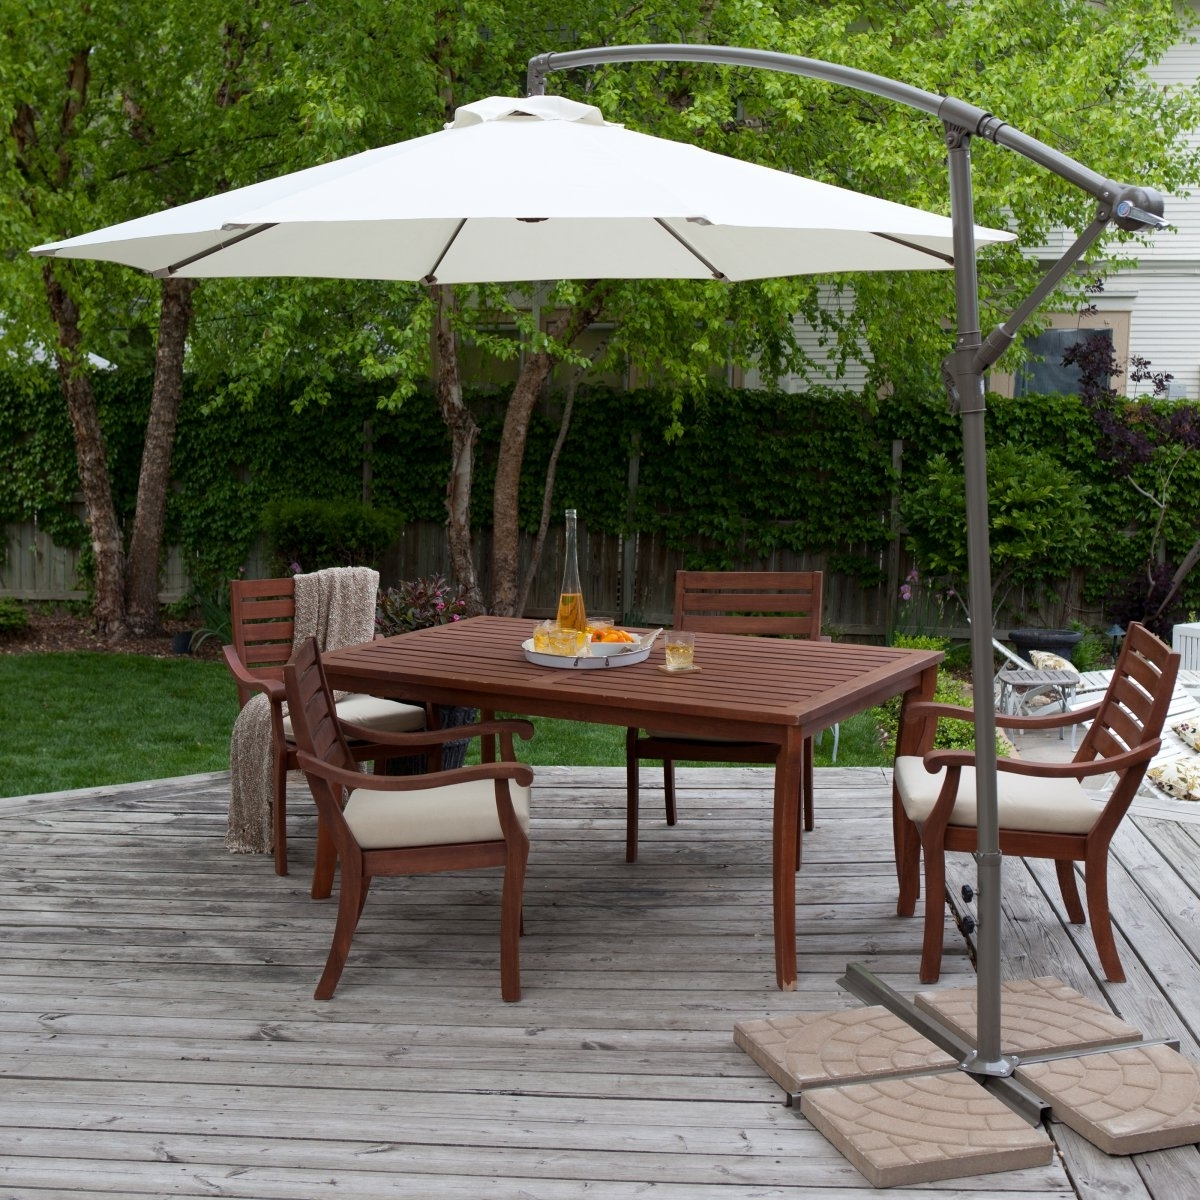 2018 Patio Tables With Umbrellas Intended For The Patio Table Umbrella For Comfort Gathering — Mistikcamping Home (Gallery 7 of 20)